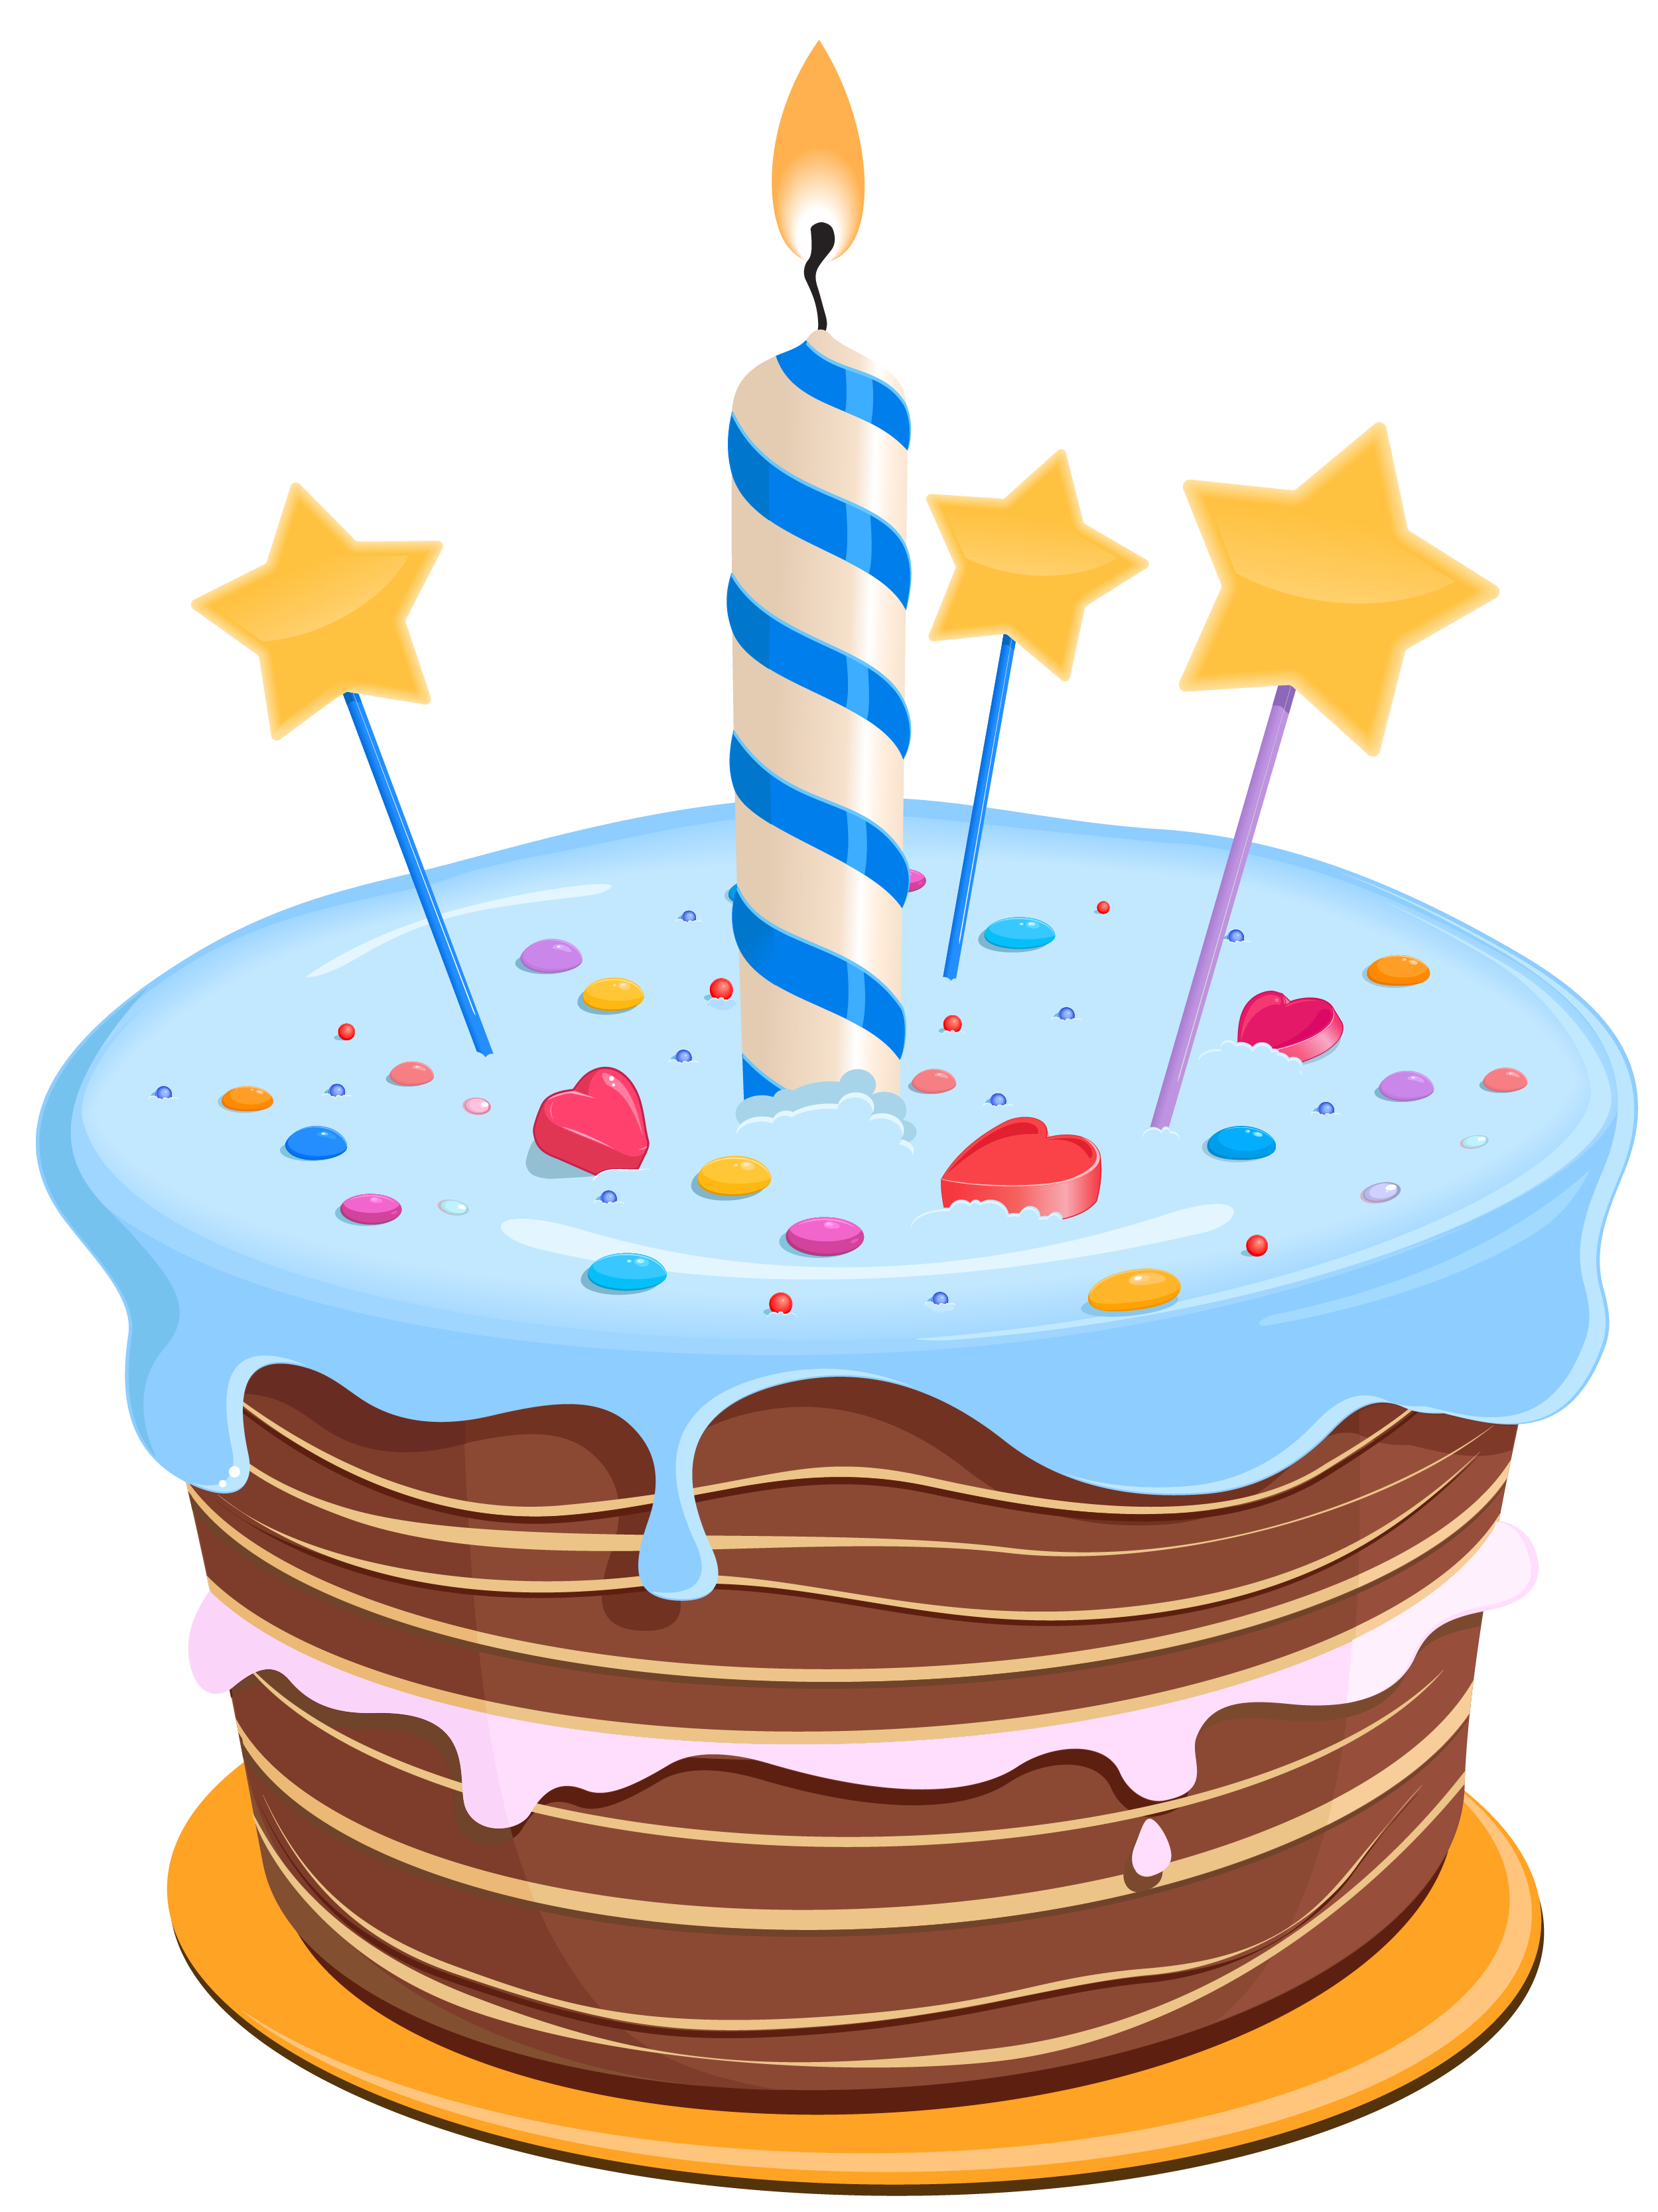 Swell Set These Cute Birthday Cake Clipart As Desktop Profile In Your Pc Personalised Birthday Cards Paralily Jamesorg